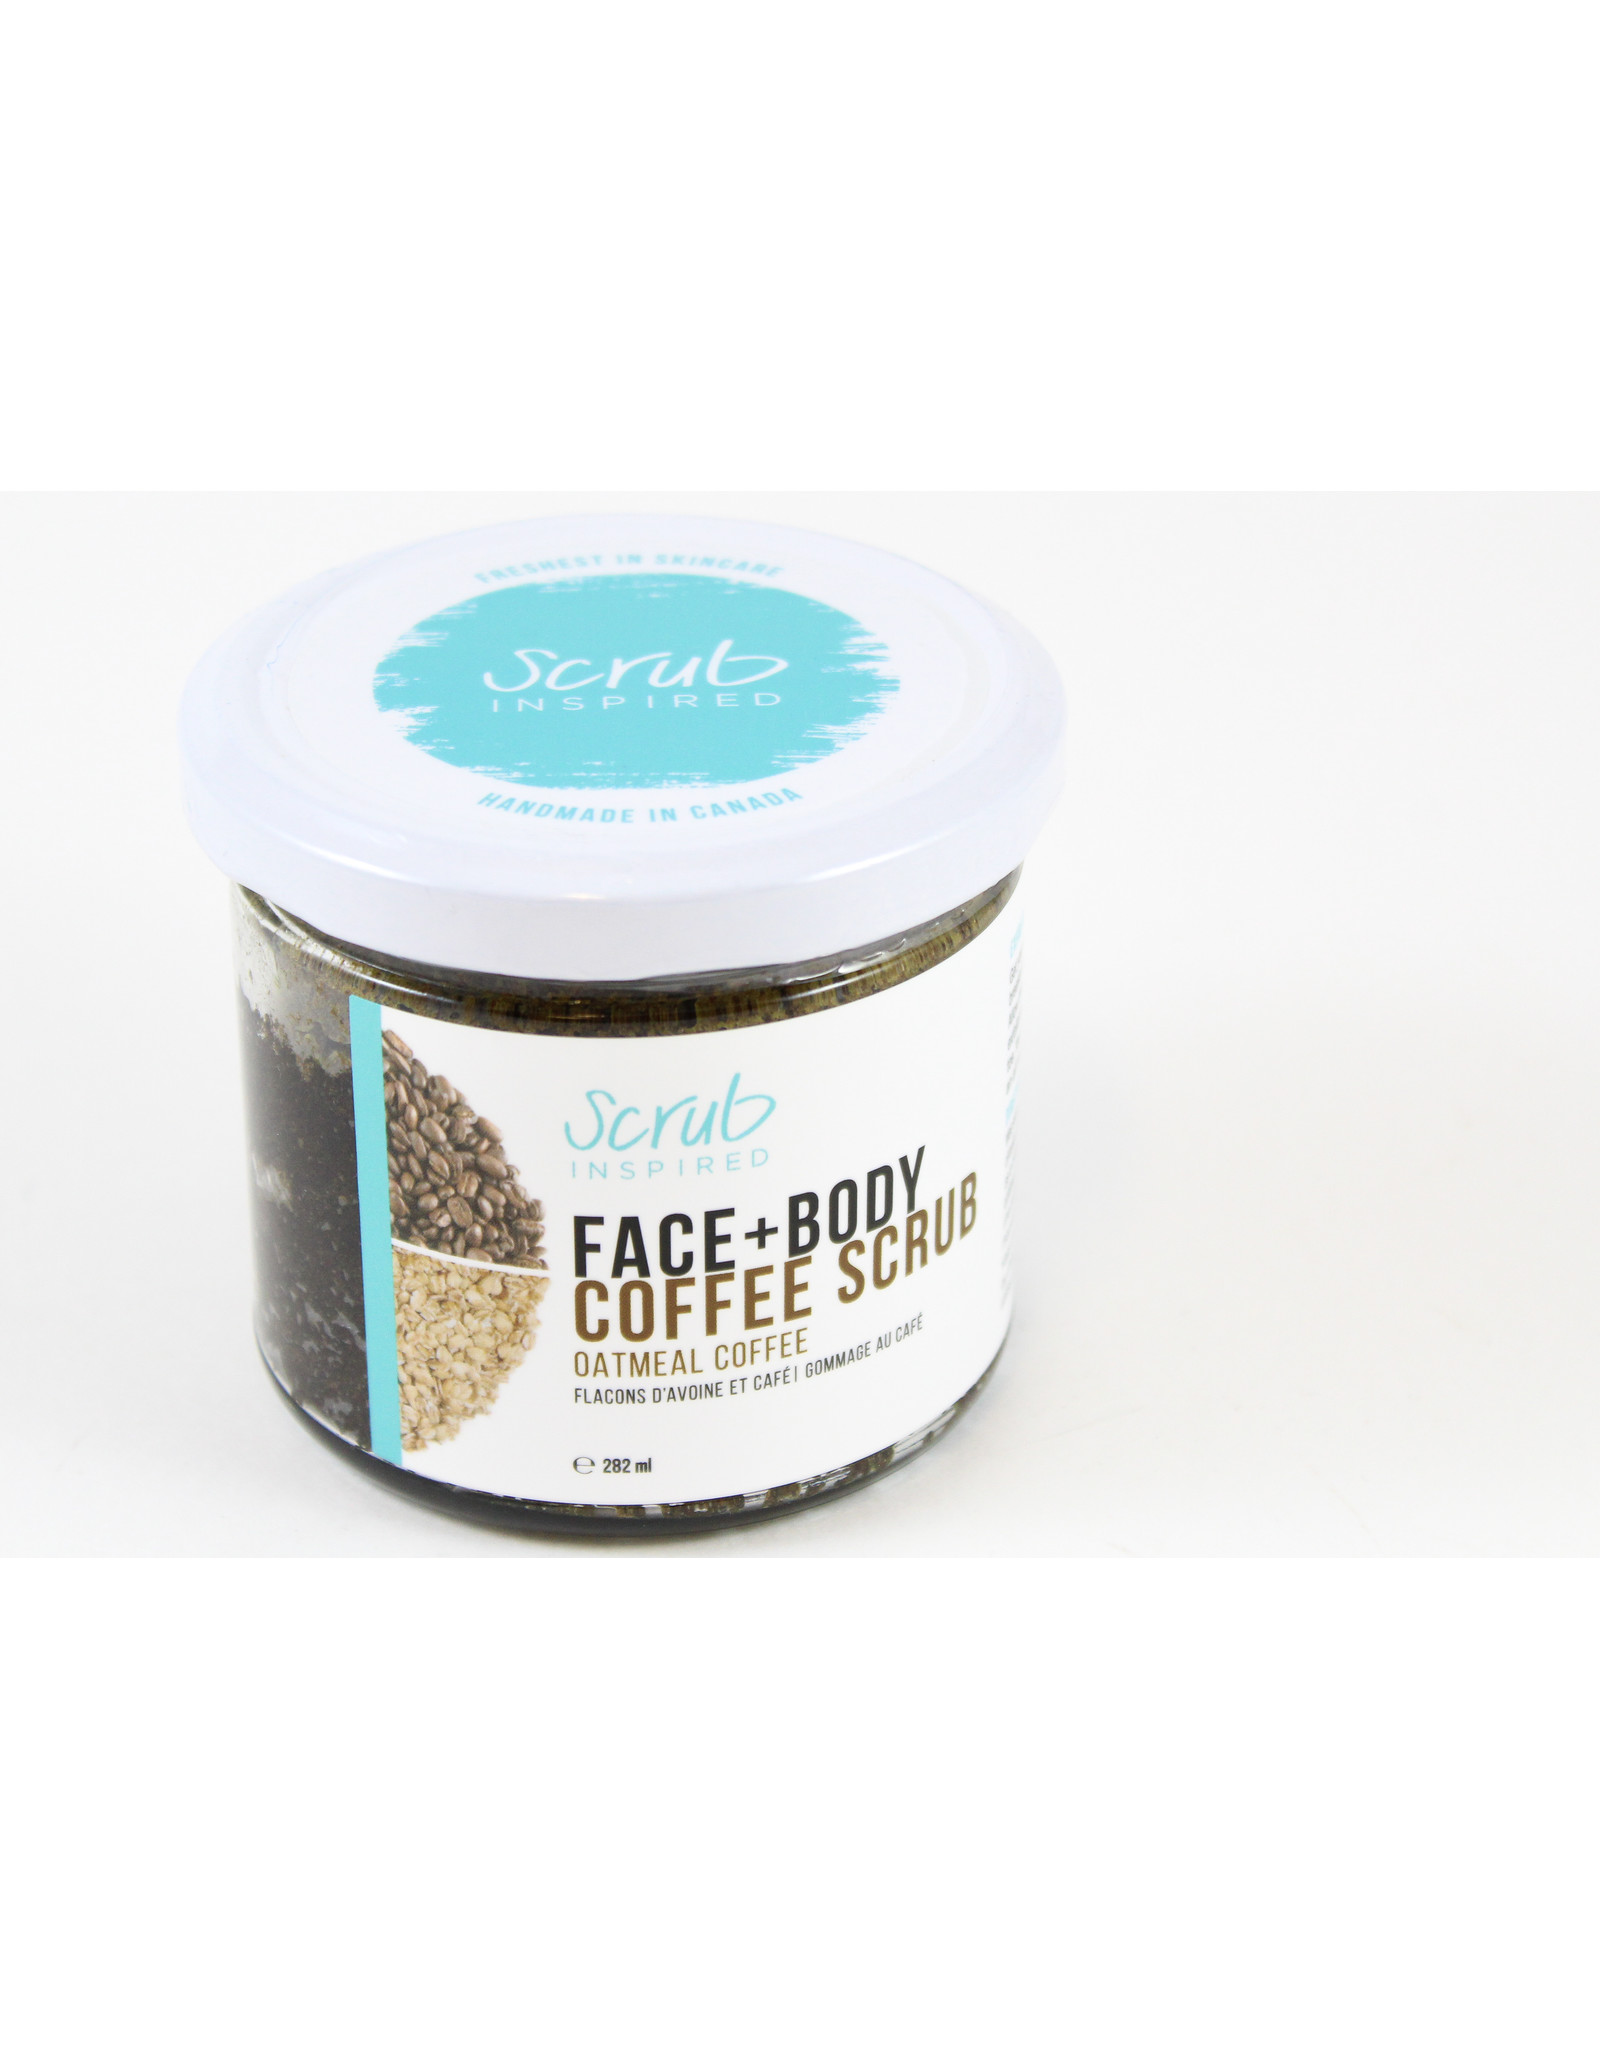 Scrub Inspired Face and Body Scrubs by Scrub Inspired